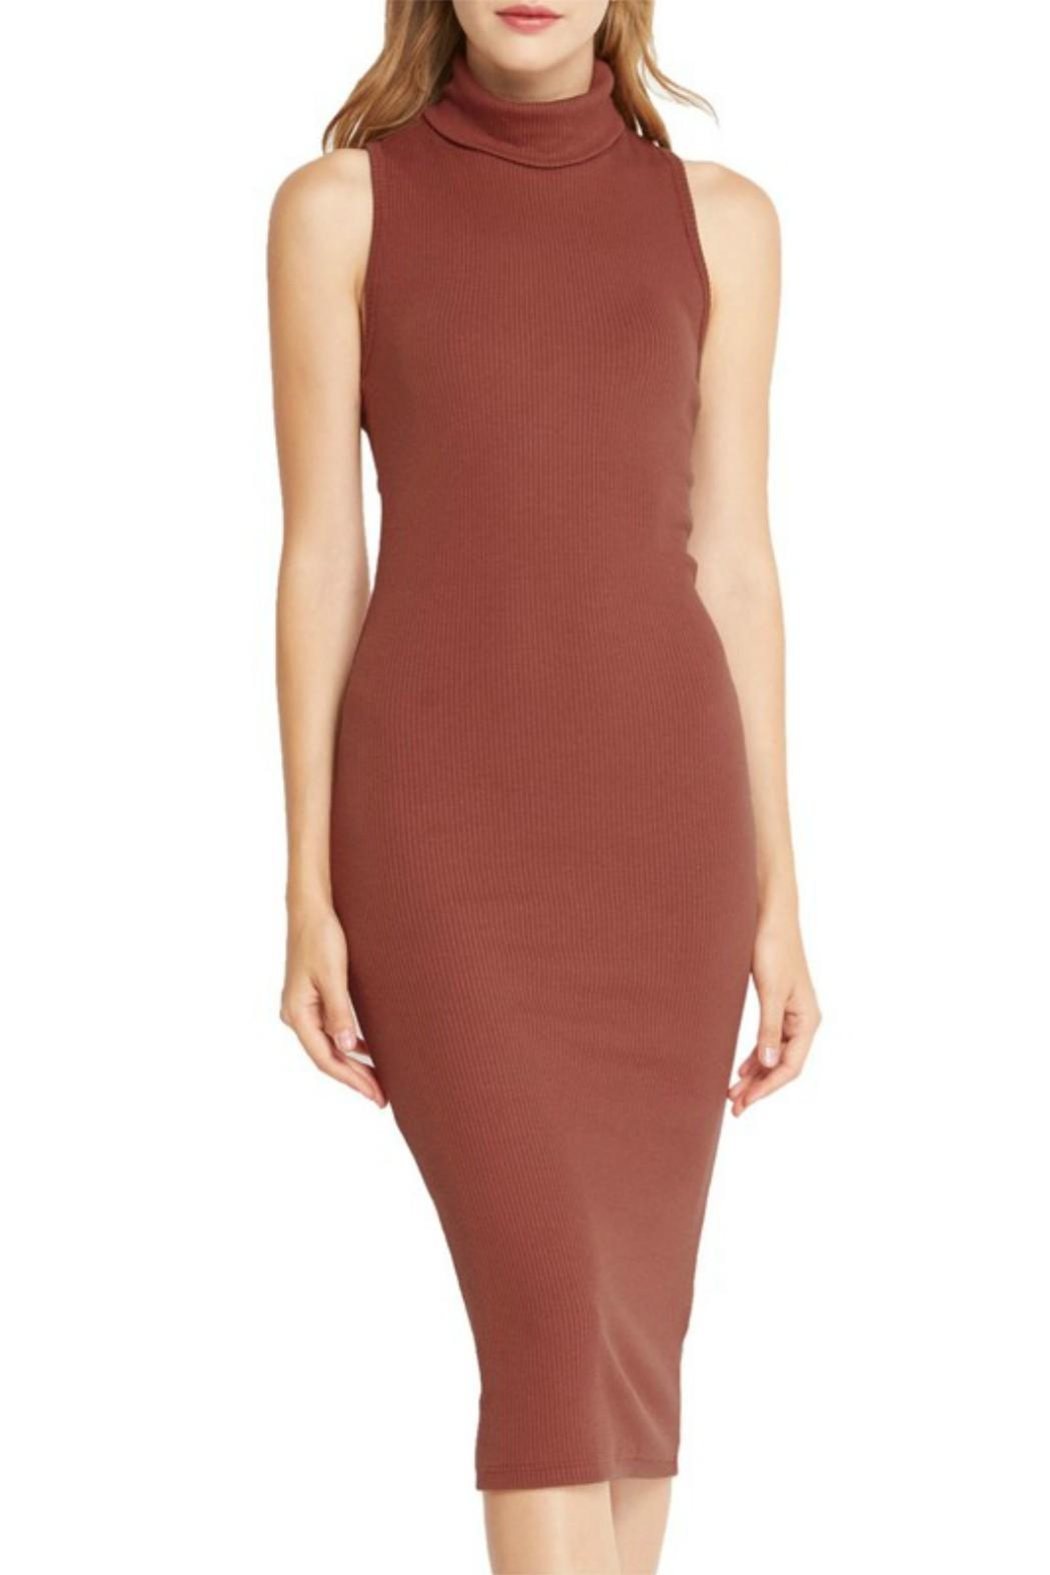 Mai Tai Rust Midi Dress - Front Full Image